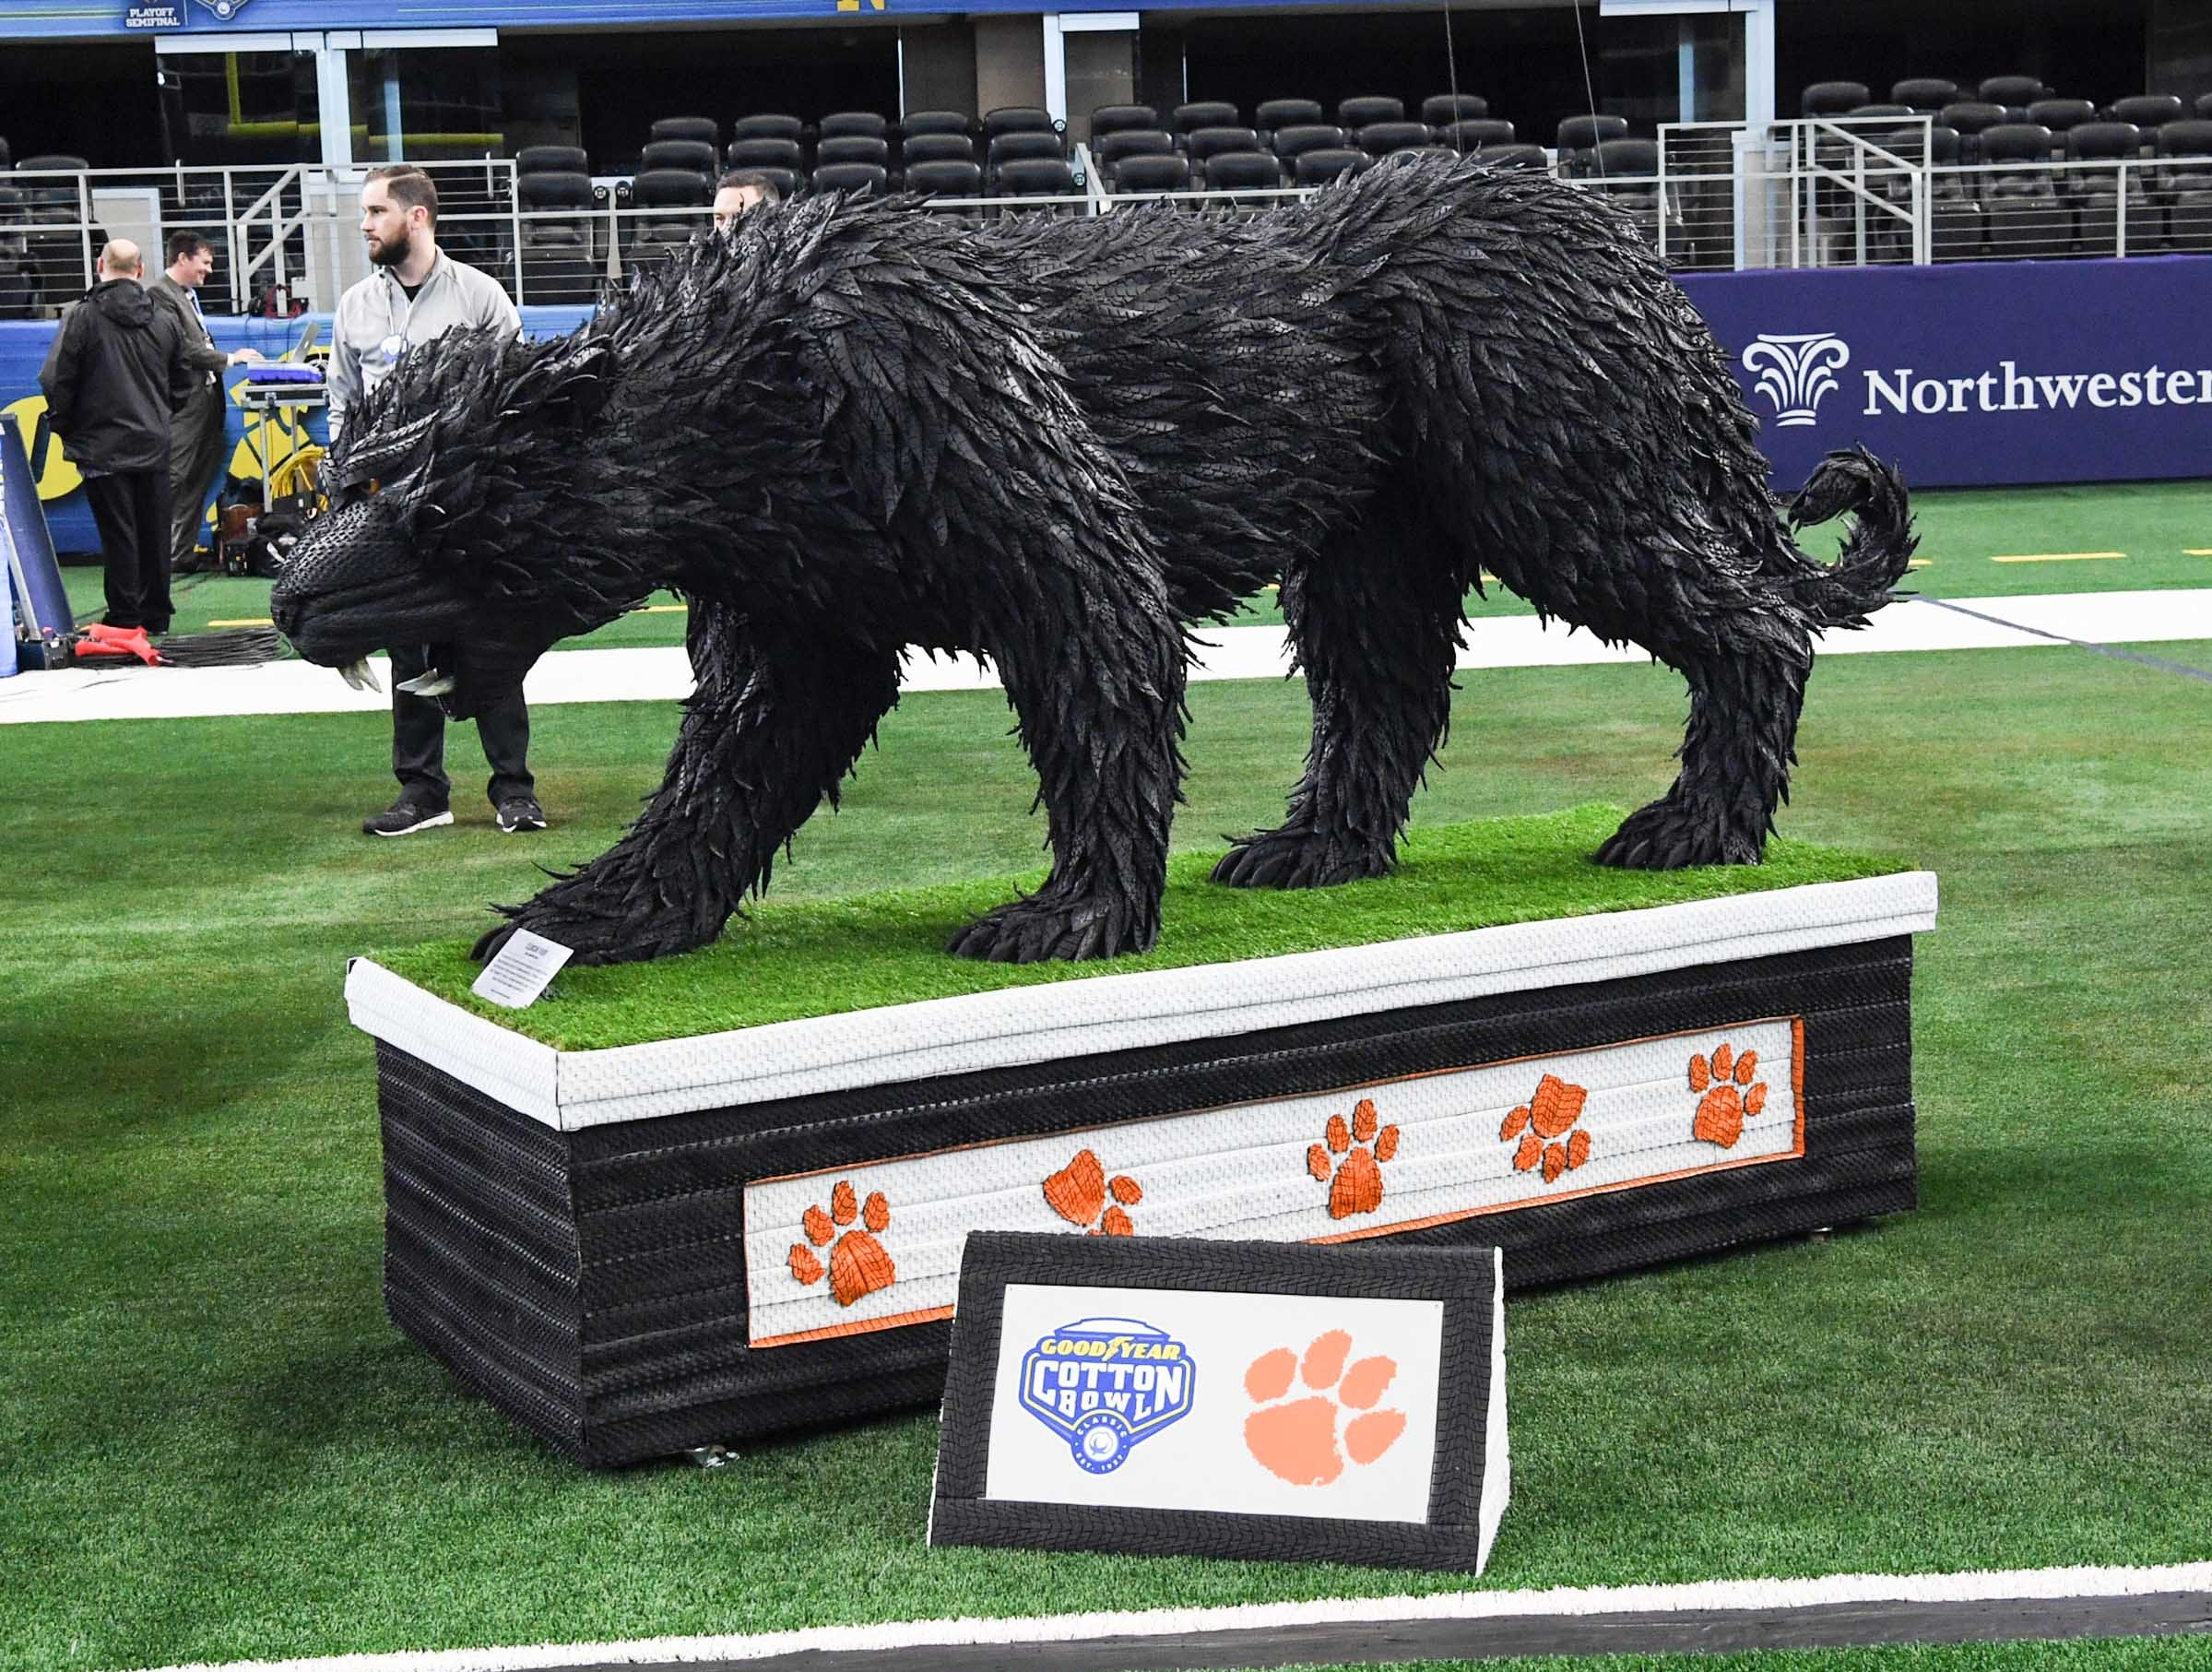 An artistic creation of a tiger made with Good Year tires during Media Day for Clemson and Notre Dame at the AT&T Stadium in Dallas December 27, 2018.